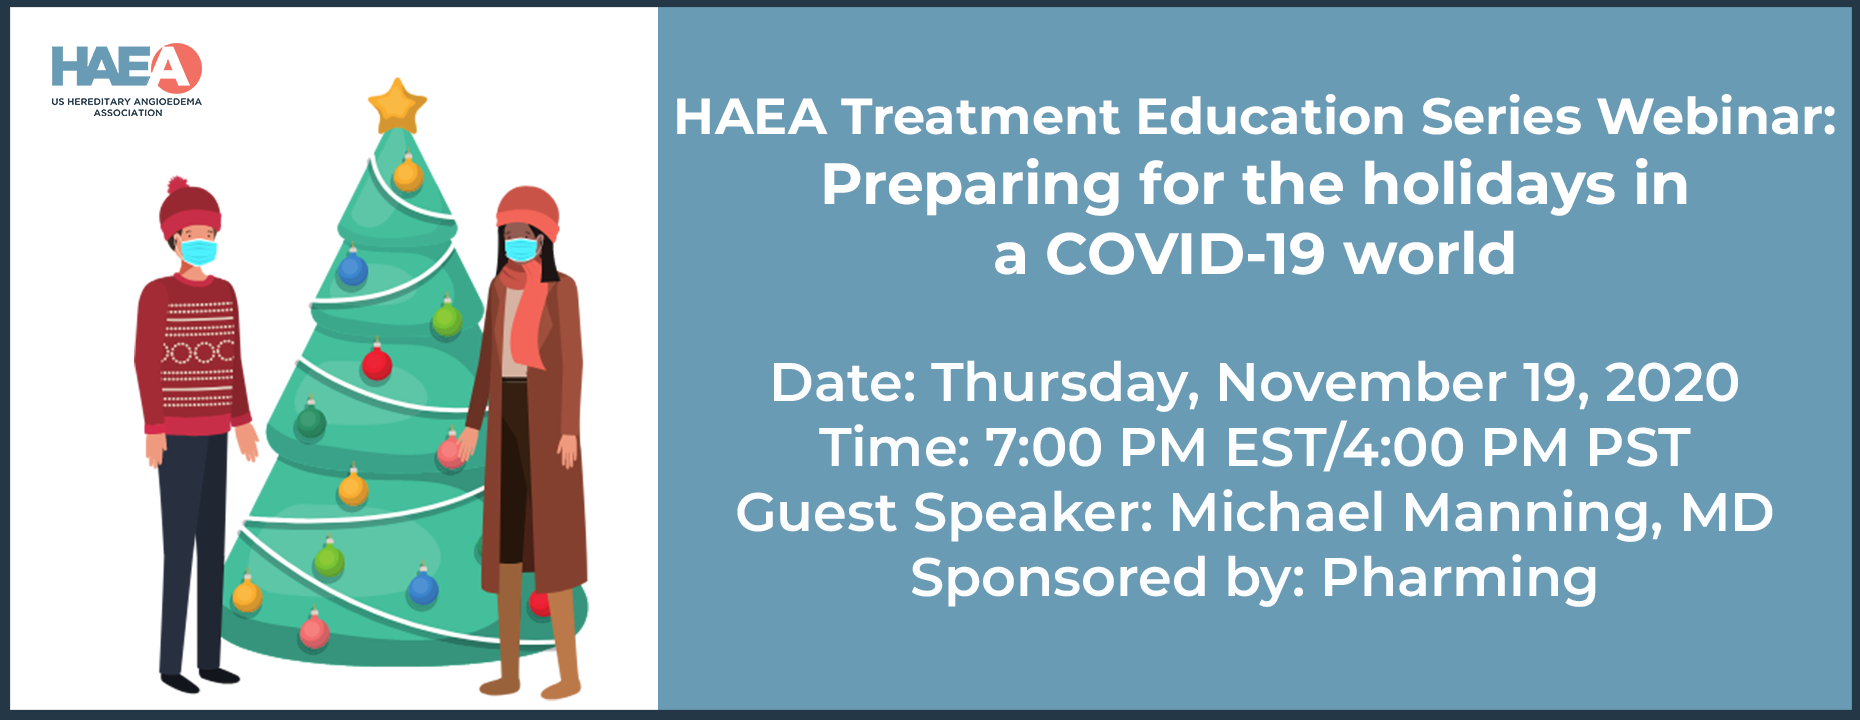 HAEA Treatment Education Series Webinar: Preparing for the holidays in a COVID-19 world